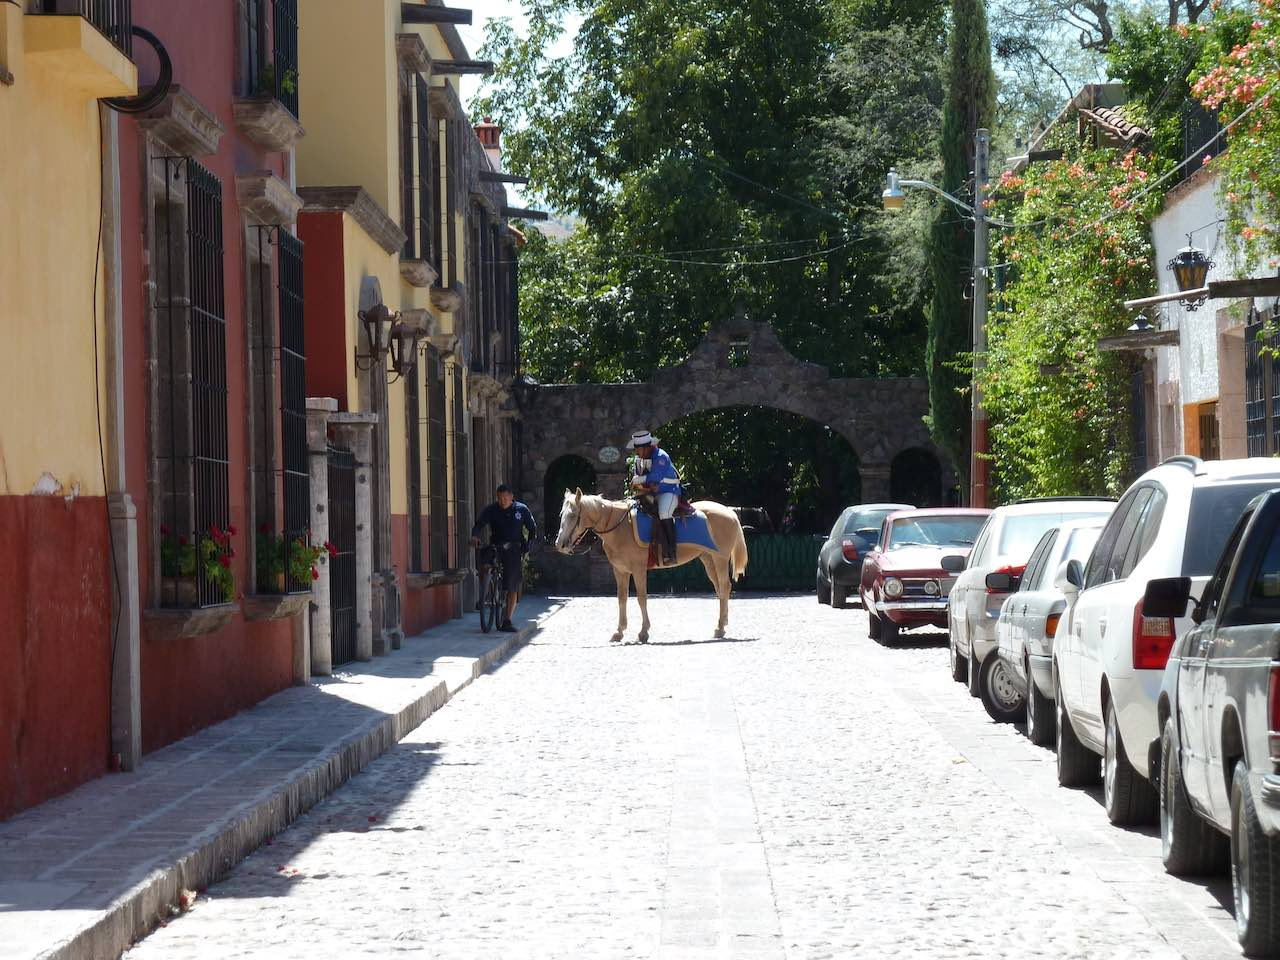 man on a horse in the street